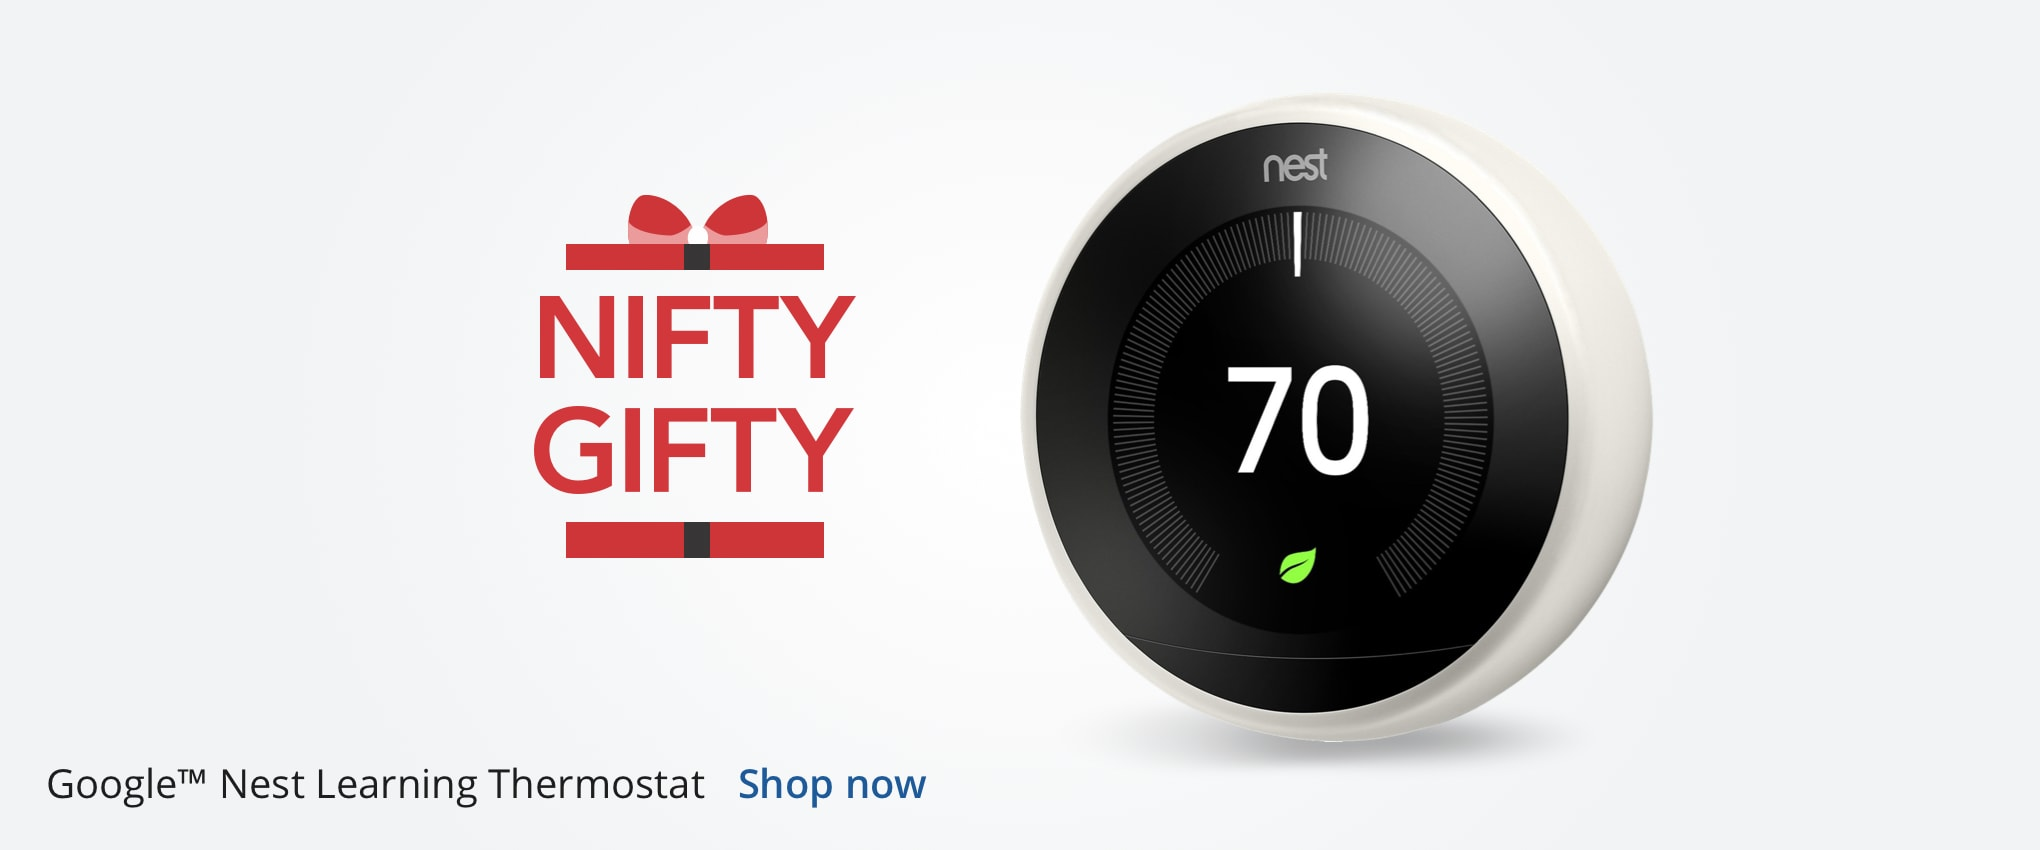 Google™ Nest Learning Thermostat (3rd Generation)